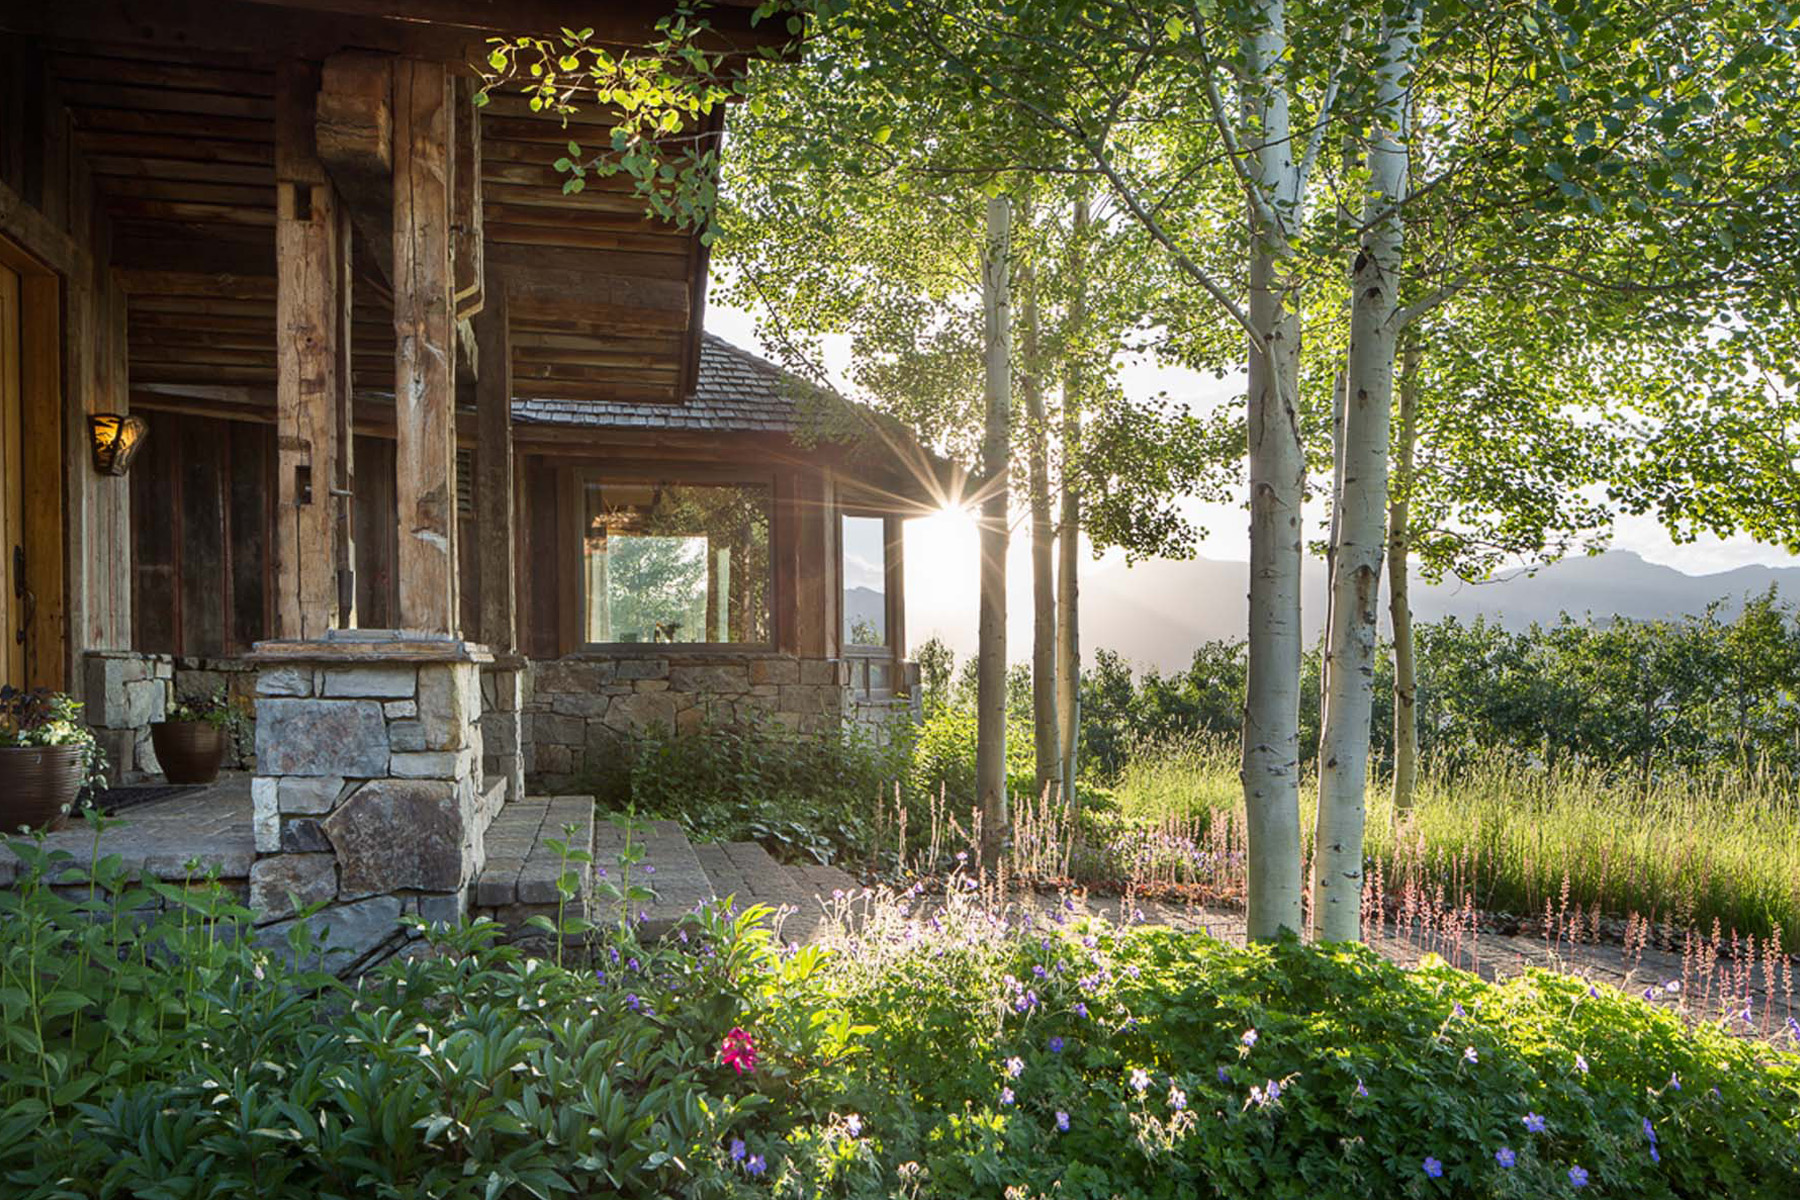 Single Family Home for Sale at Rustic Elegance & Commanding Teton Views at Spring Creek Resort. 190 W Calliope Drive, Jackson, Wyoming, 83001 Jackson Hole, United States